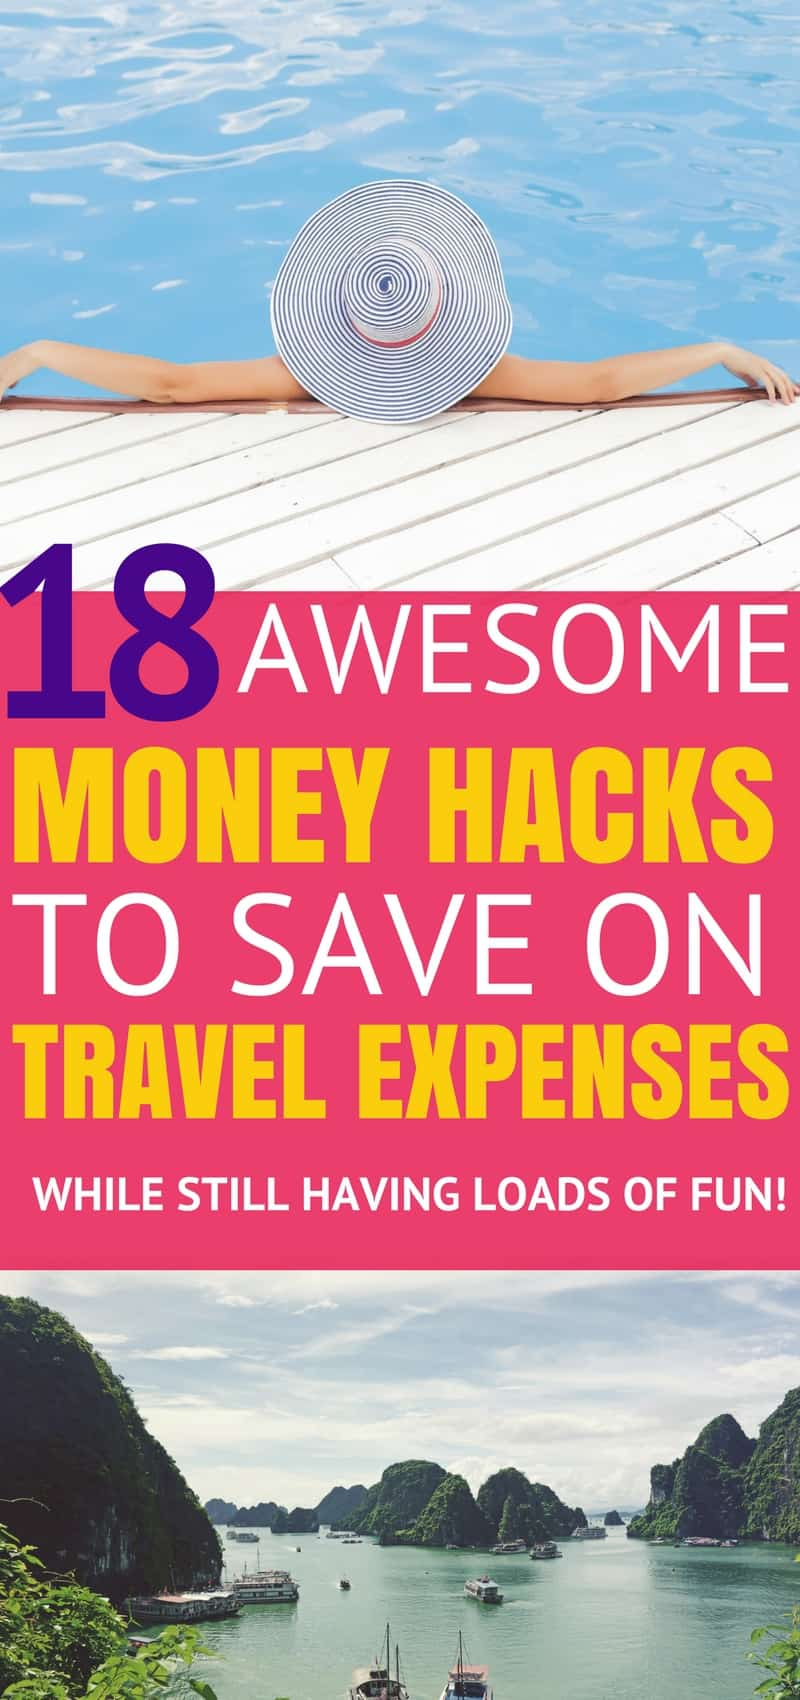 These 22 hacks to save insane amounts of money on travel expenses are seriously the best! I'm so happy I found these great tips and tricks! Now I can finally travel under budget without missing out on perks! Definitely pinning!